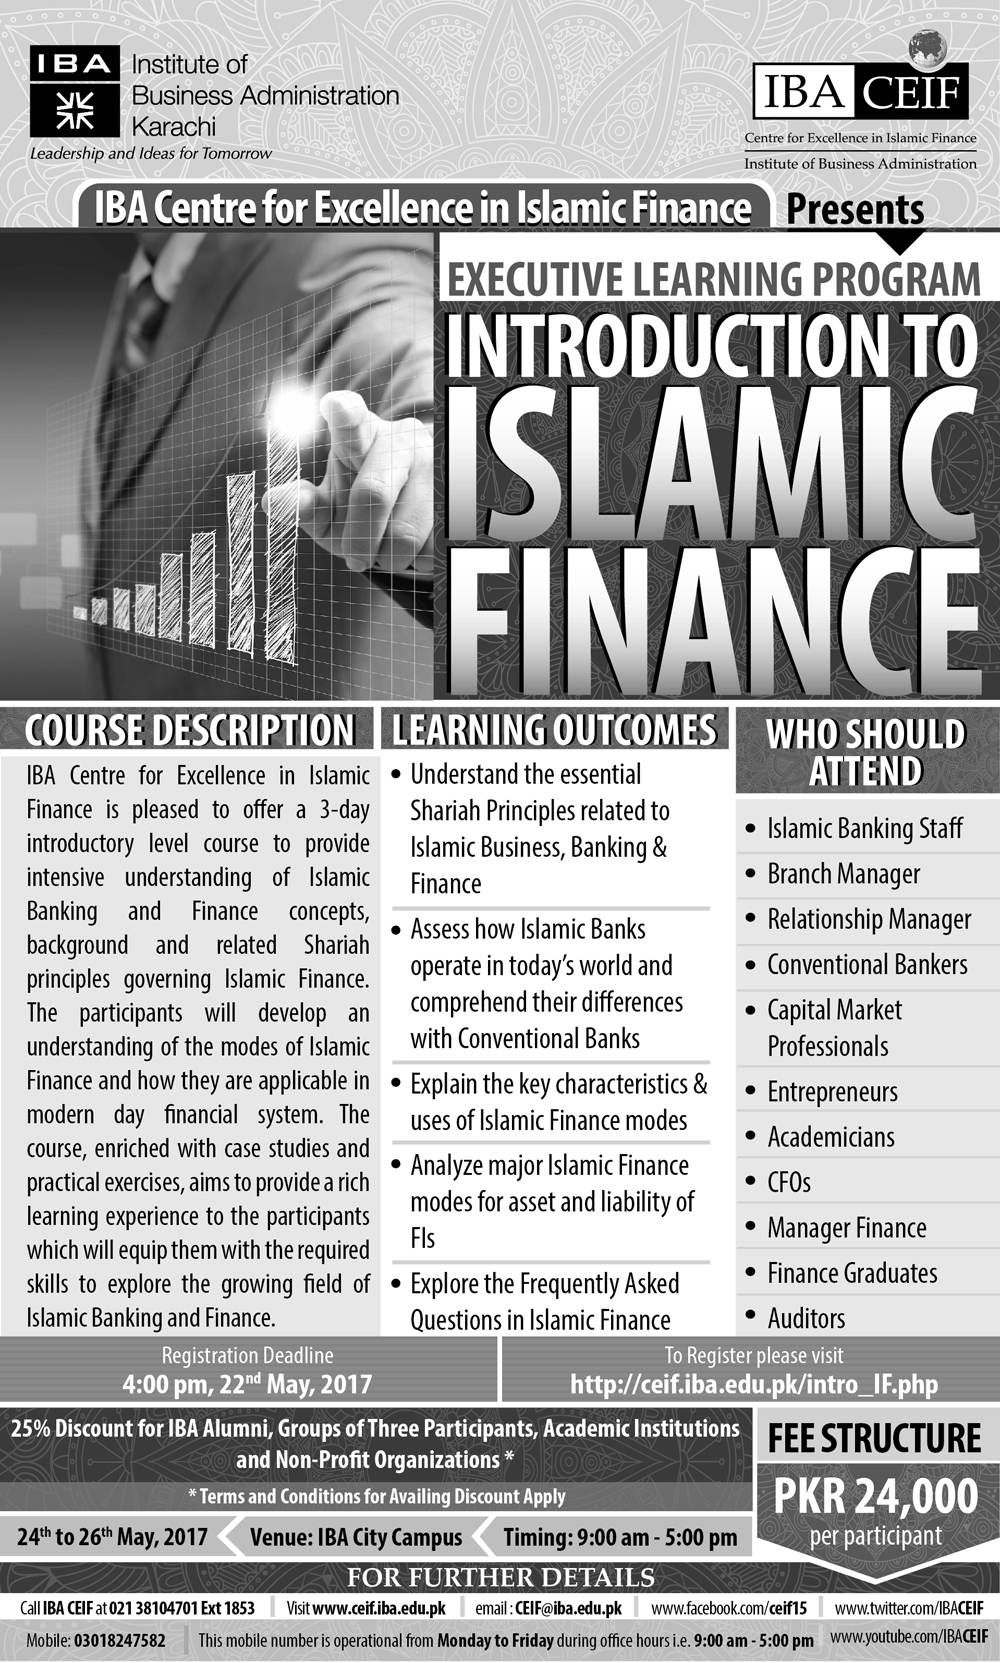 IBA-CEIF Introduction to Islamic Finance